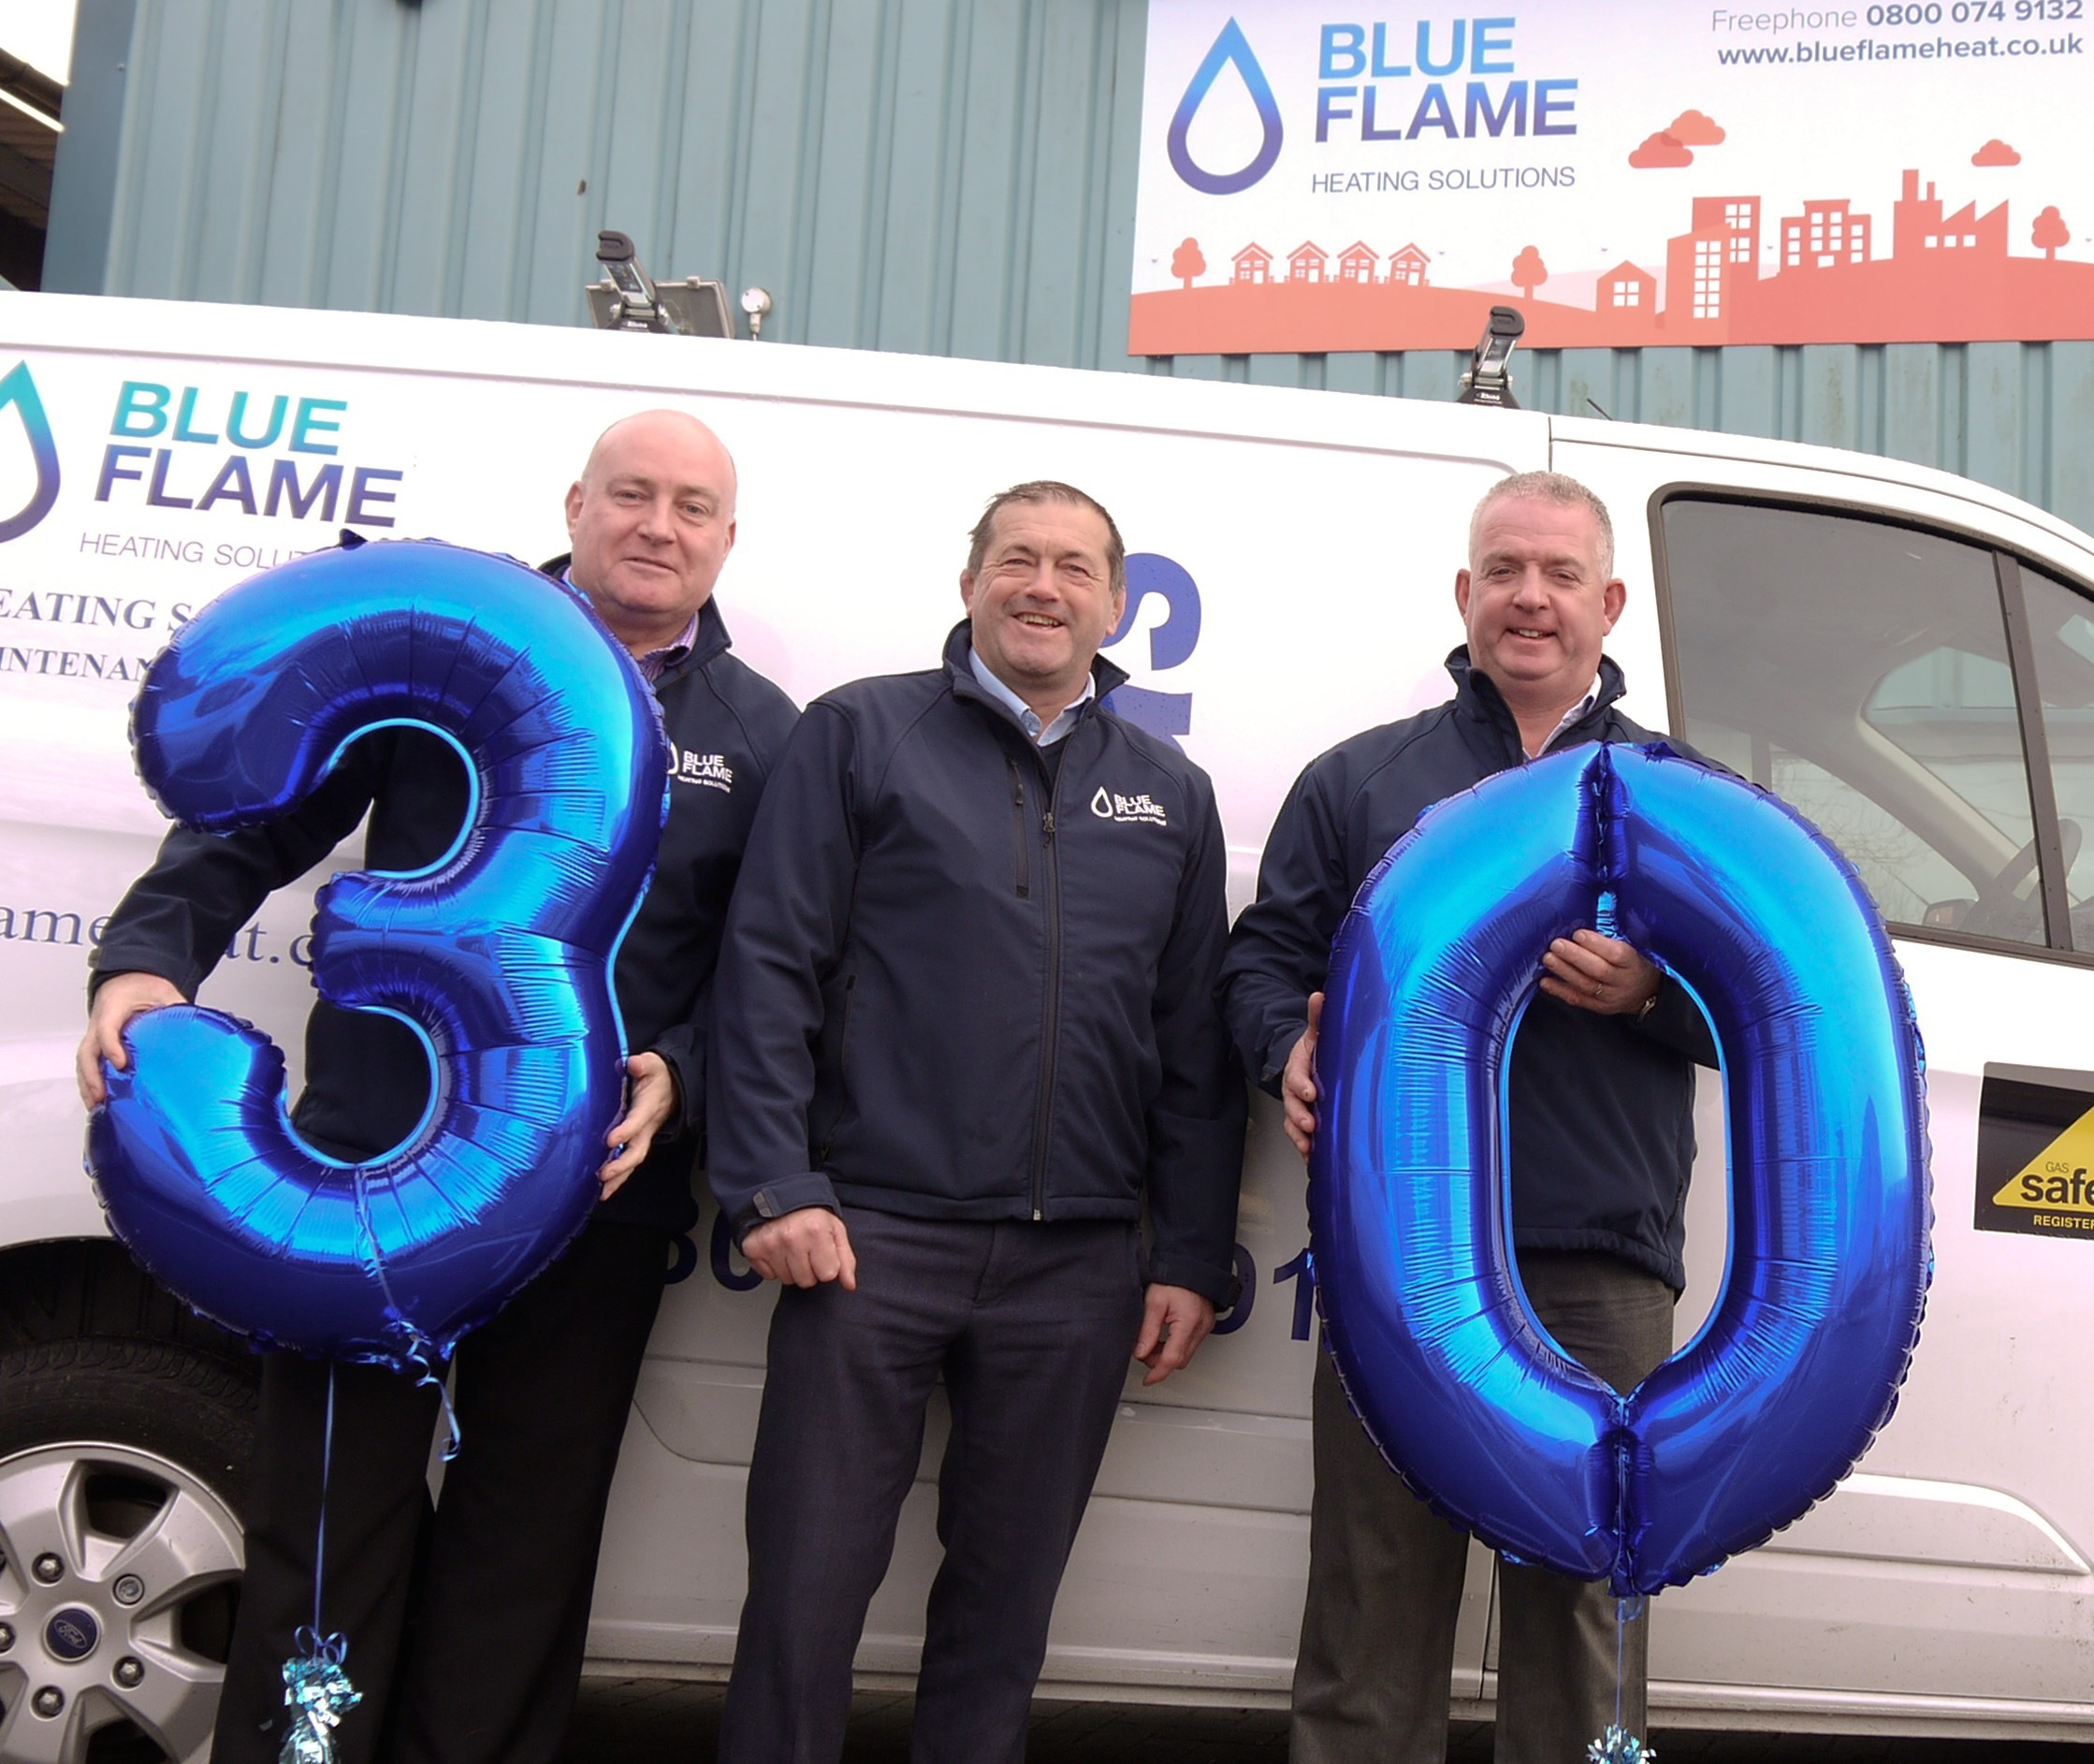 Birthday Boys - Blue Flame directors (l-r) Simon Foxhall, Paul Smith and Mark Bolitho get ready to mark the company's 30th anniversary